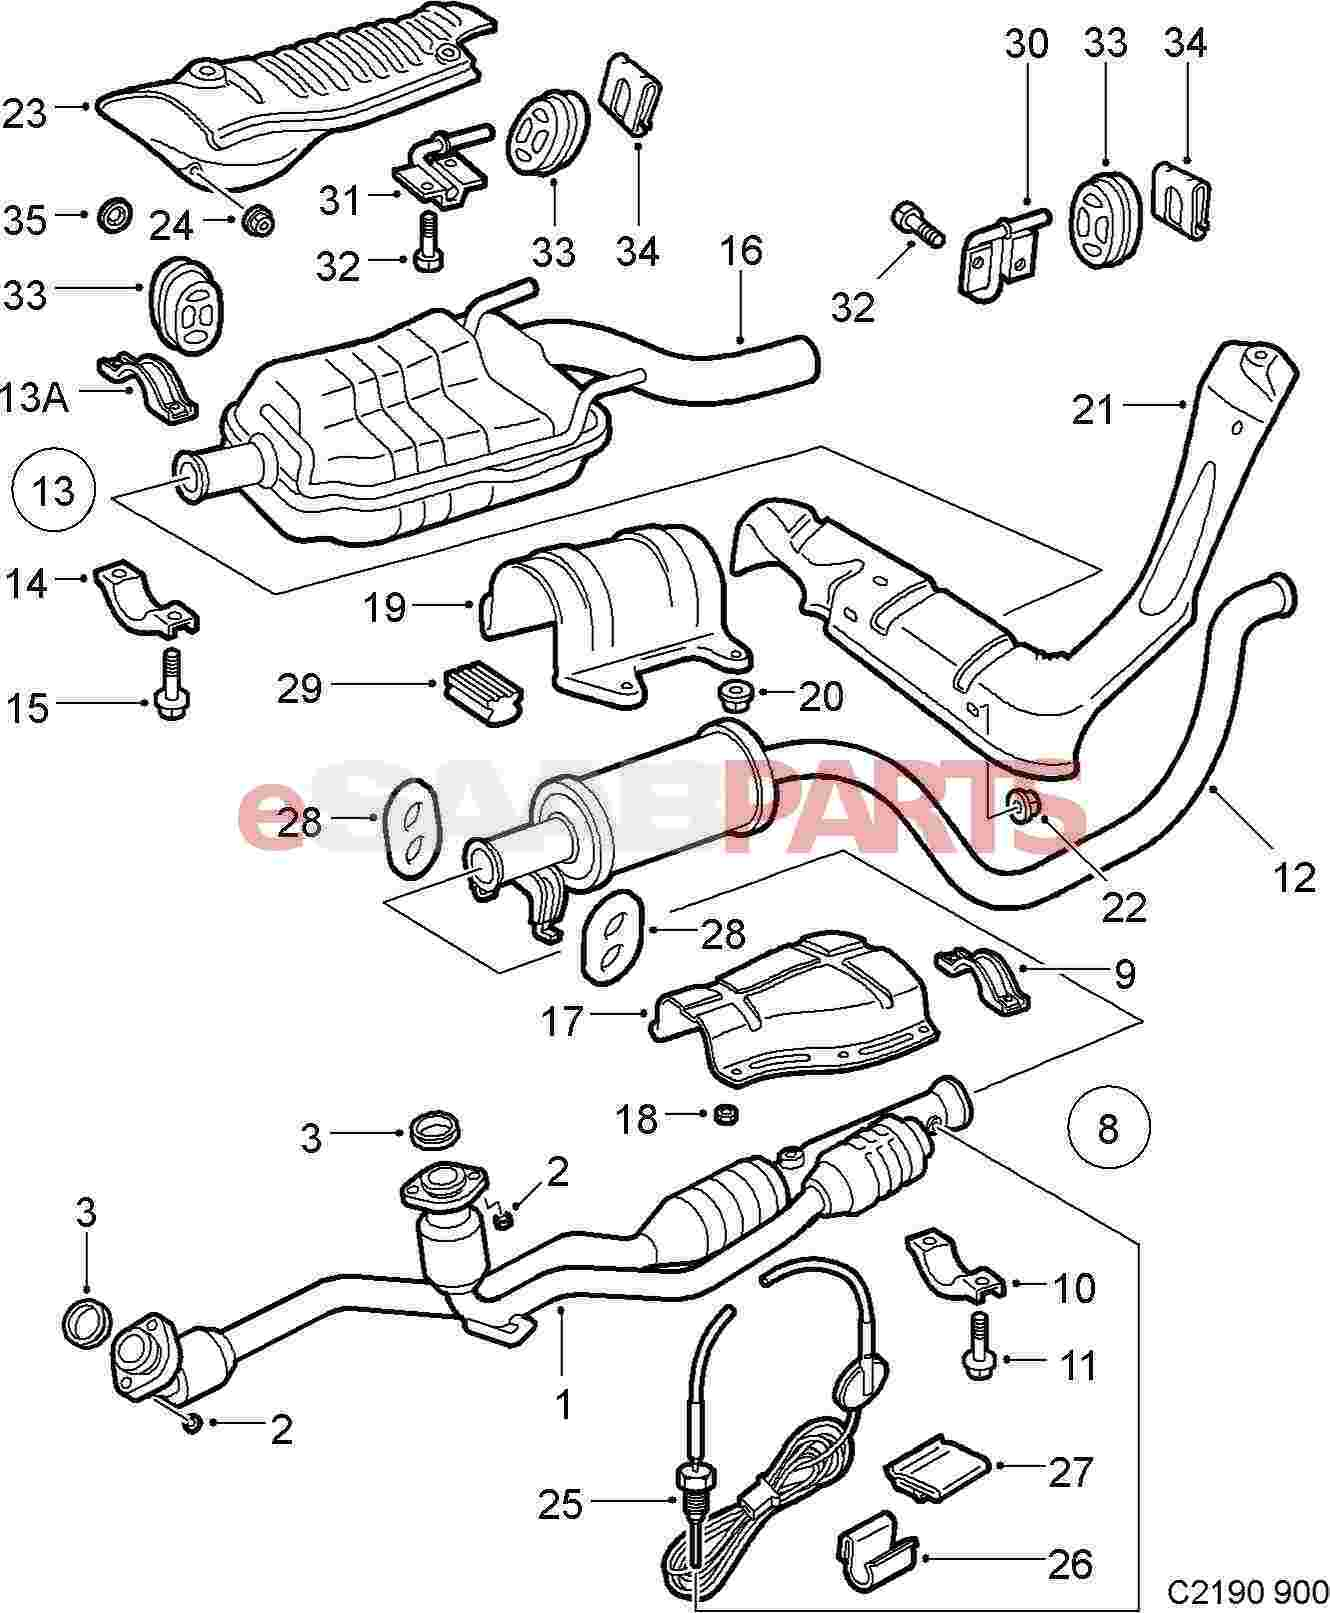 tags: #mr2 spyder exhaust system#headers toyota mr2#mr2 spyder intake#toyota  camry headers#mr2 exhaust system#mr2 spyder header#mr2 spyder parts#used mr2